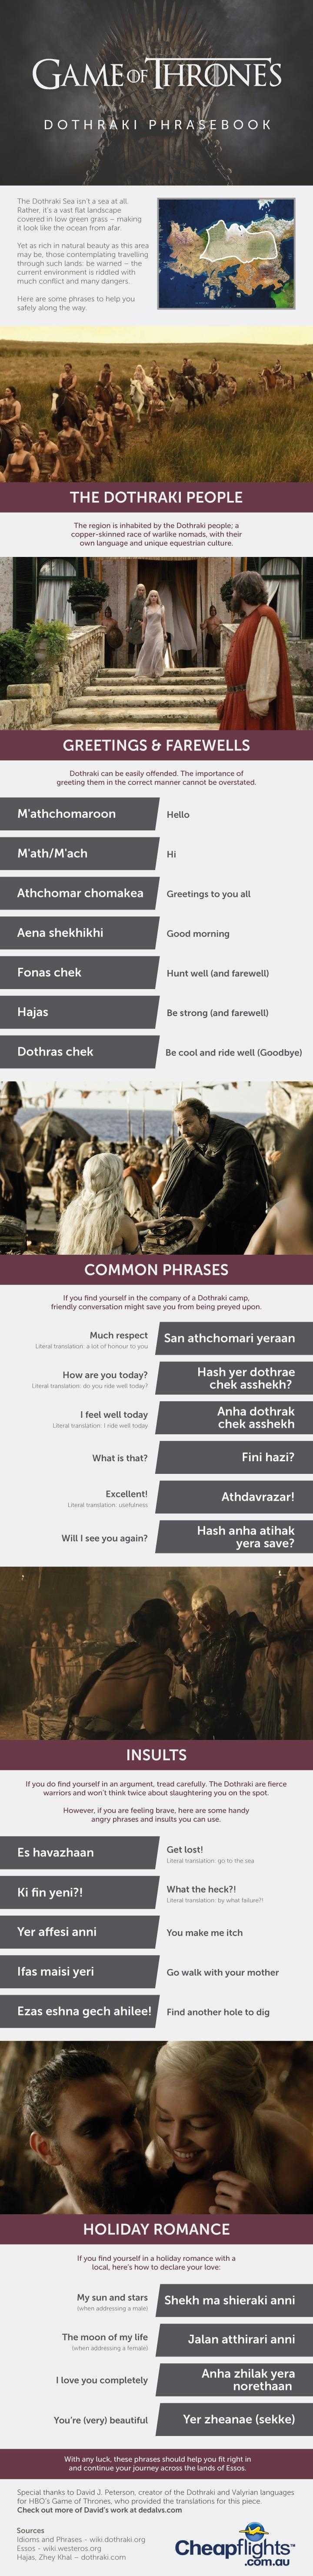 Game Of Thrones - Dothraki PhraseBook